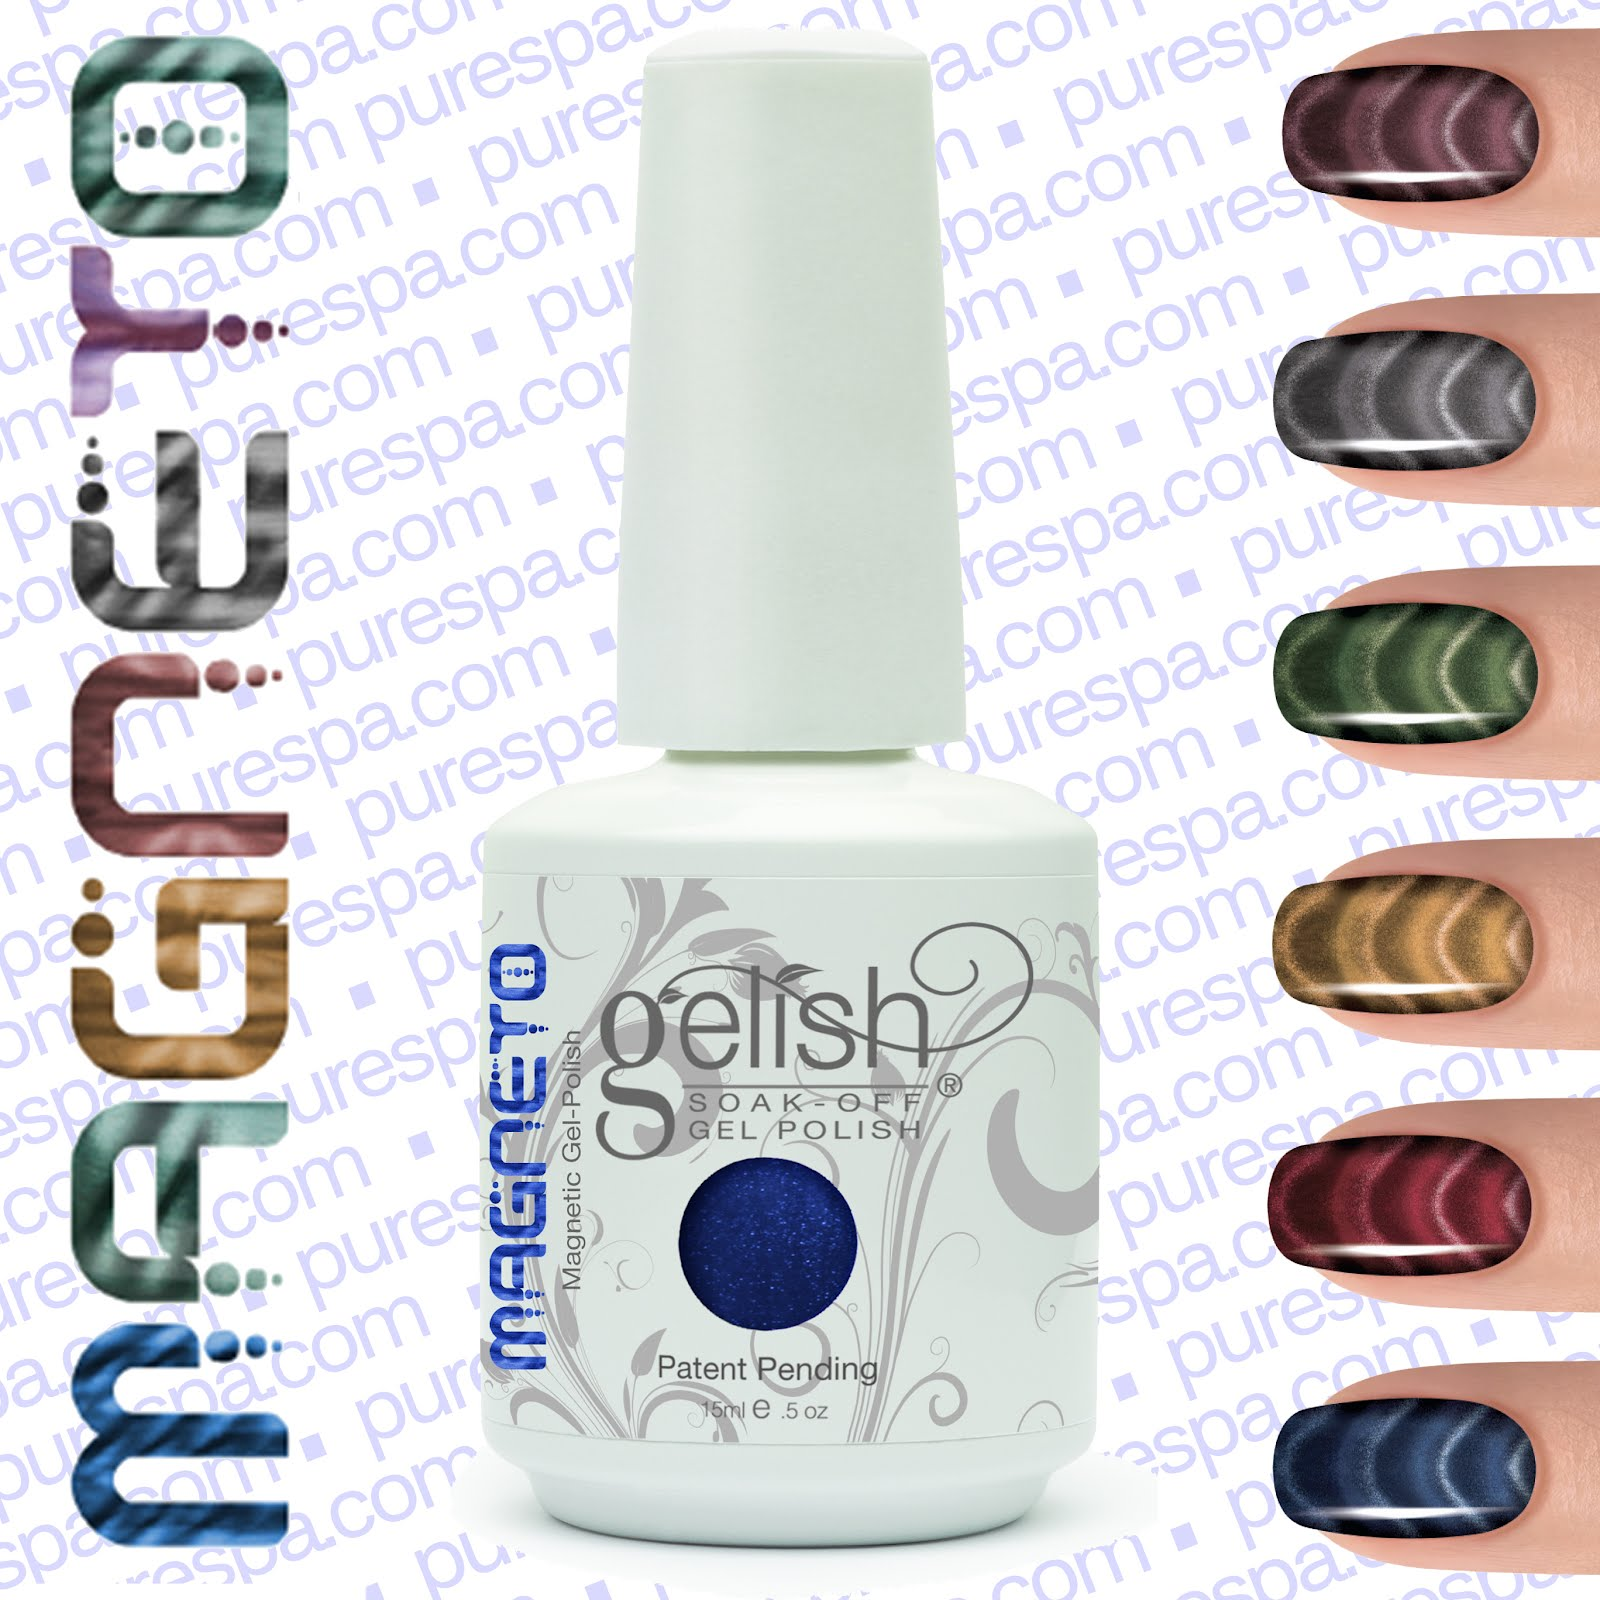 Pure spa direct blog search results for gelish gelish magneto in stock now at pure spa direct geenschuldenfo Images